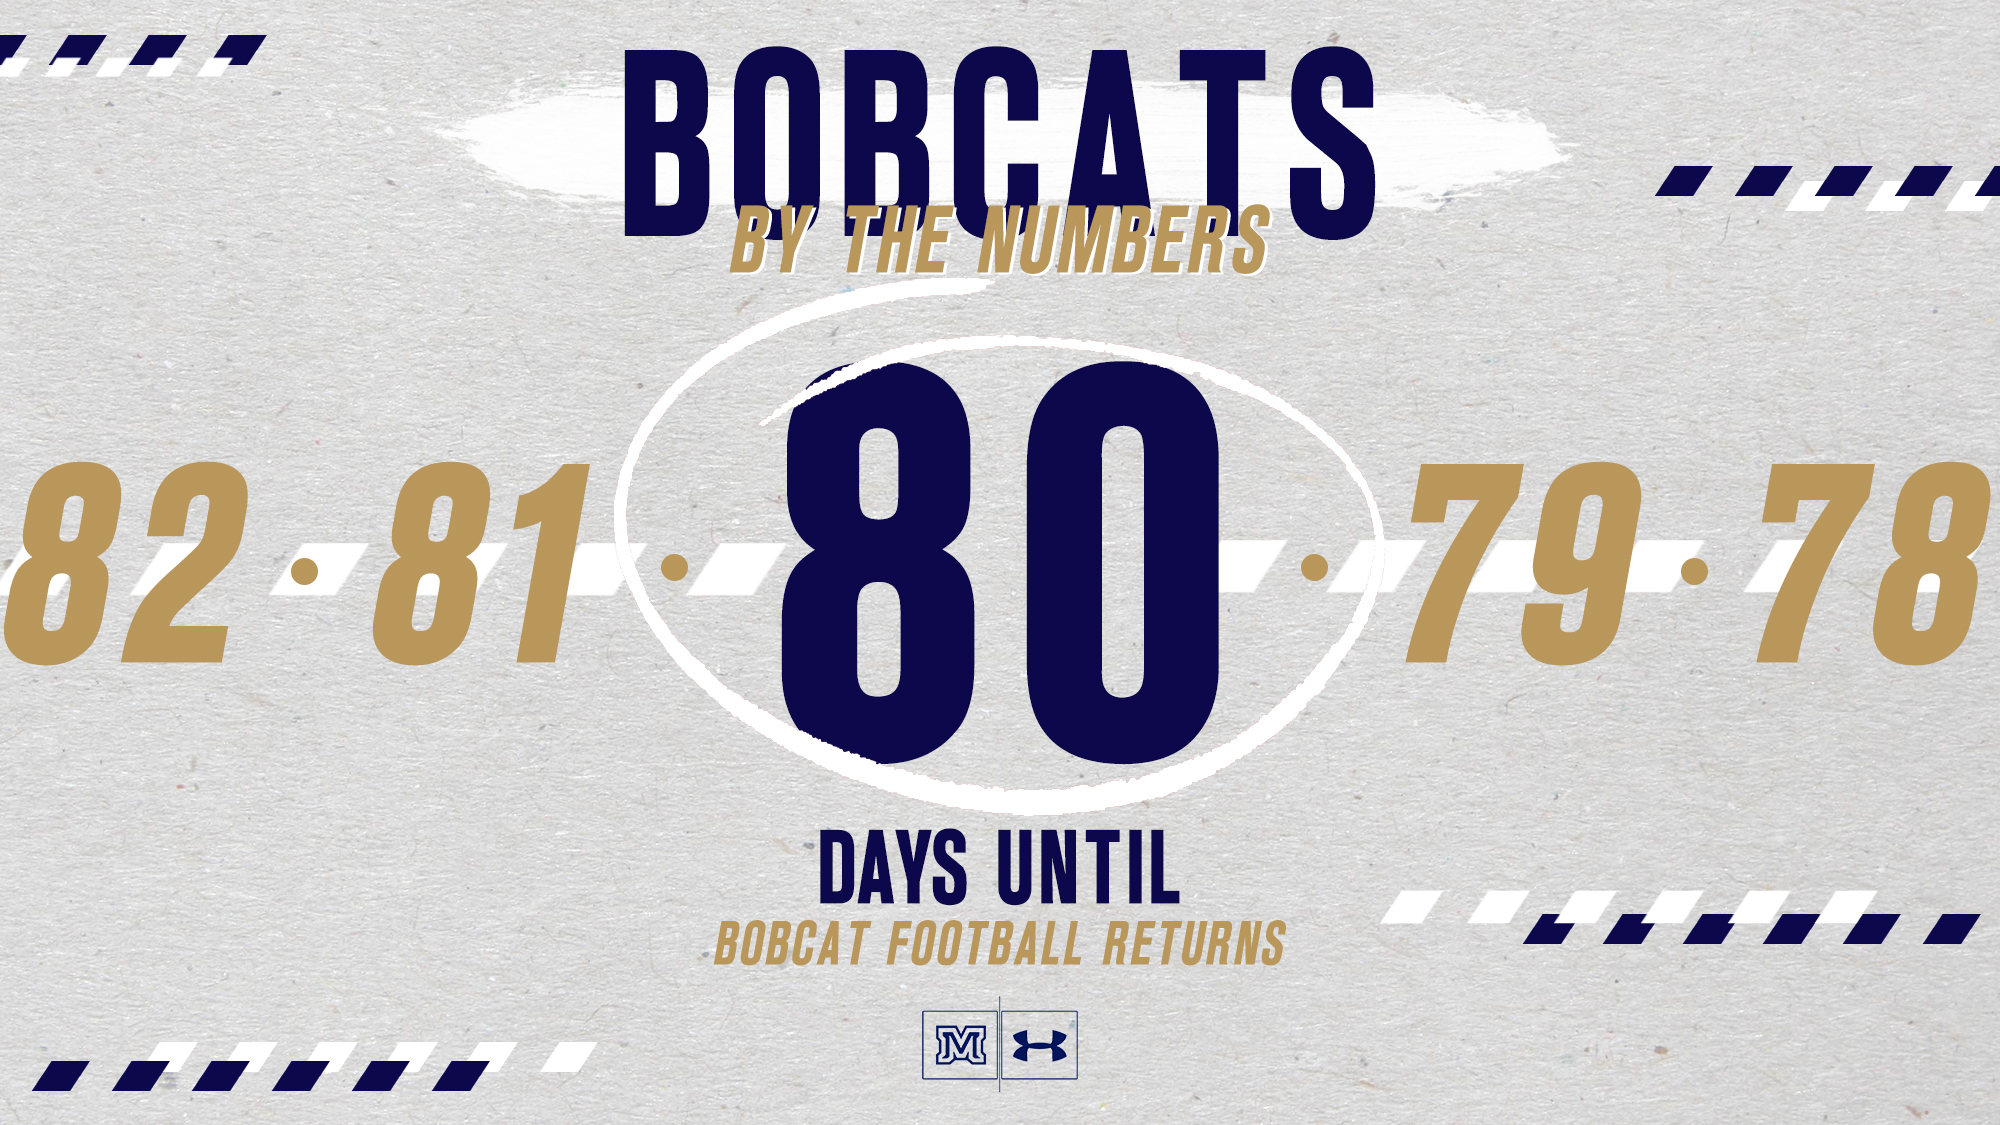 BOBCATS BY THE NUMBERS: 80 Days Before the 2019 Season Opens We Look at a Famous Punt Return